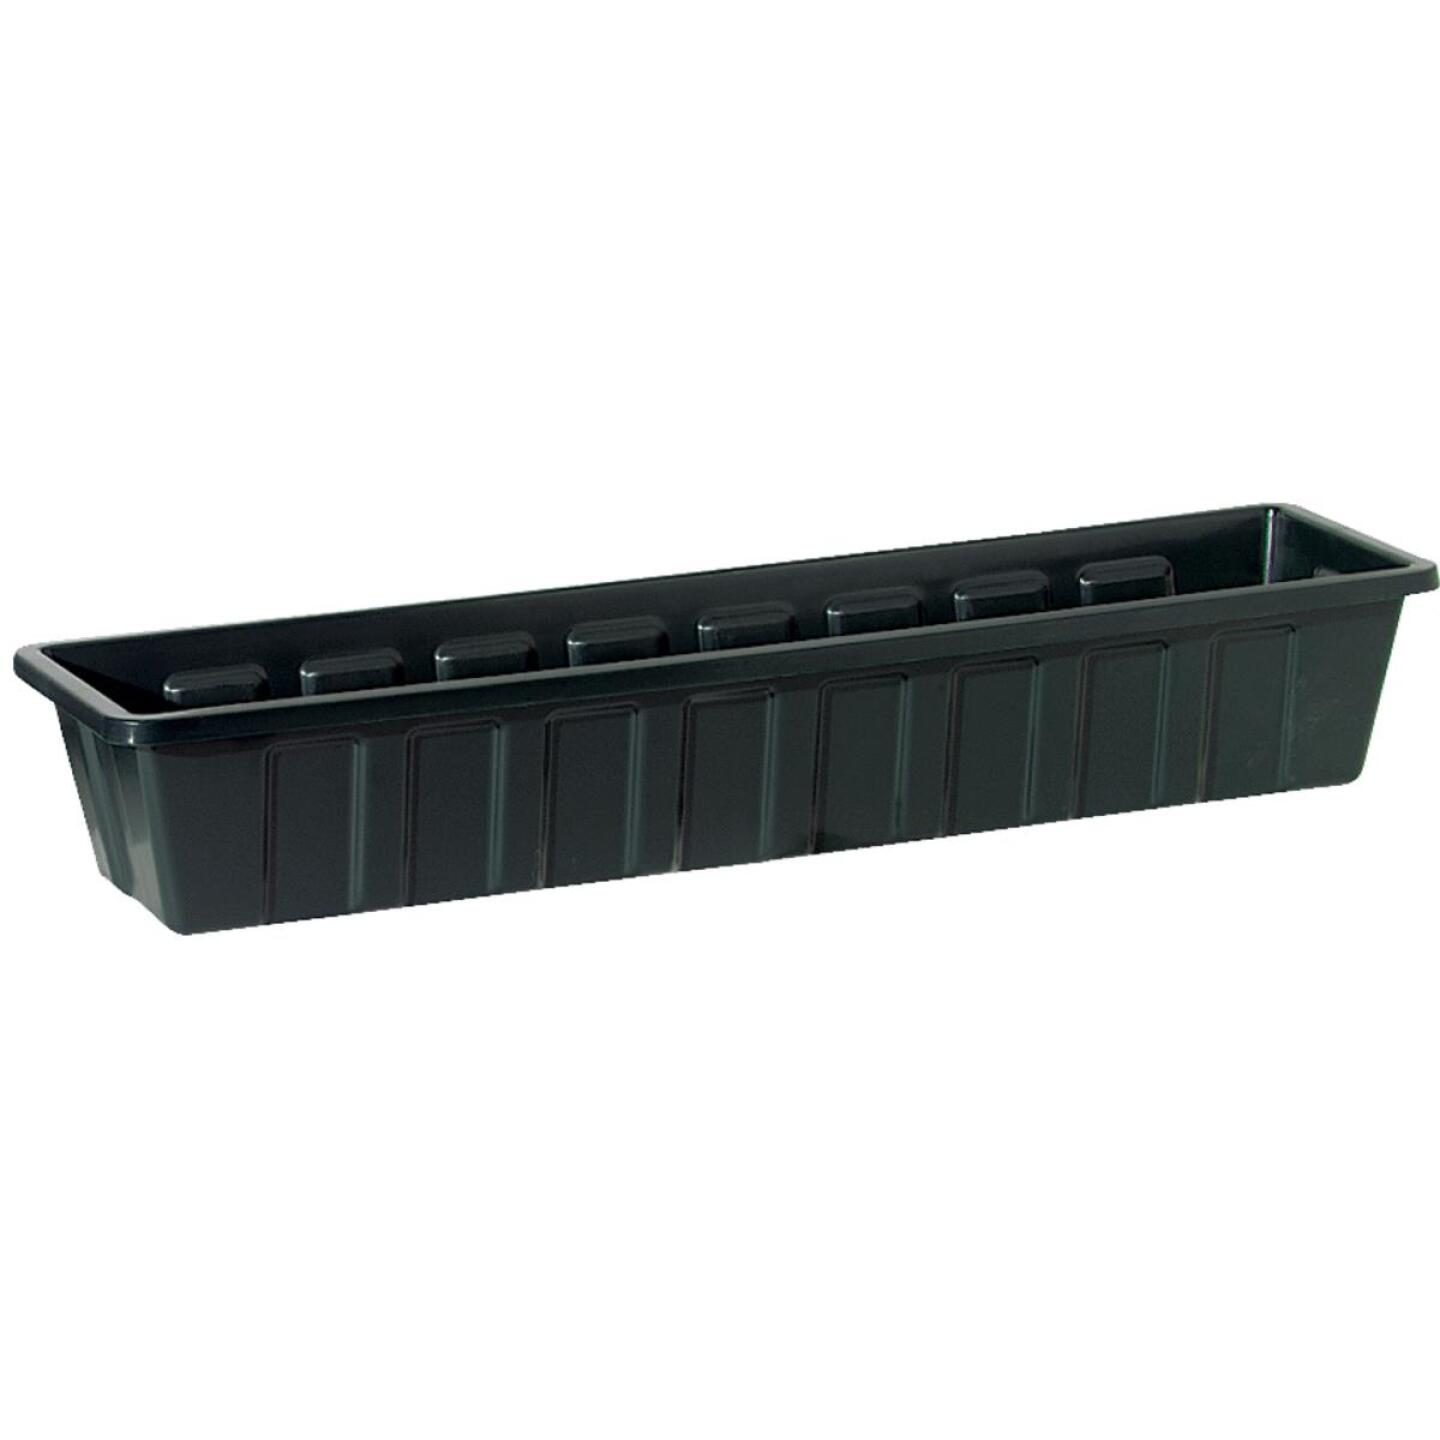 Novelty Poly-Pro 36 In. Polypropylene Hunter Green Flower Box Planter Image 1